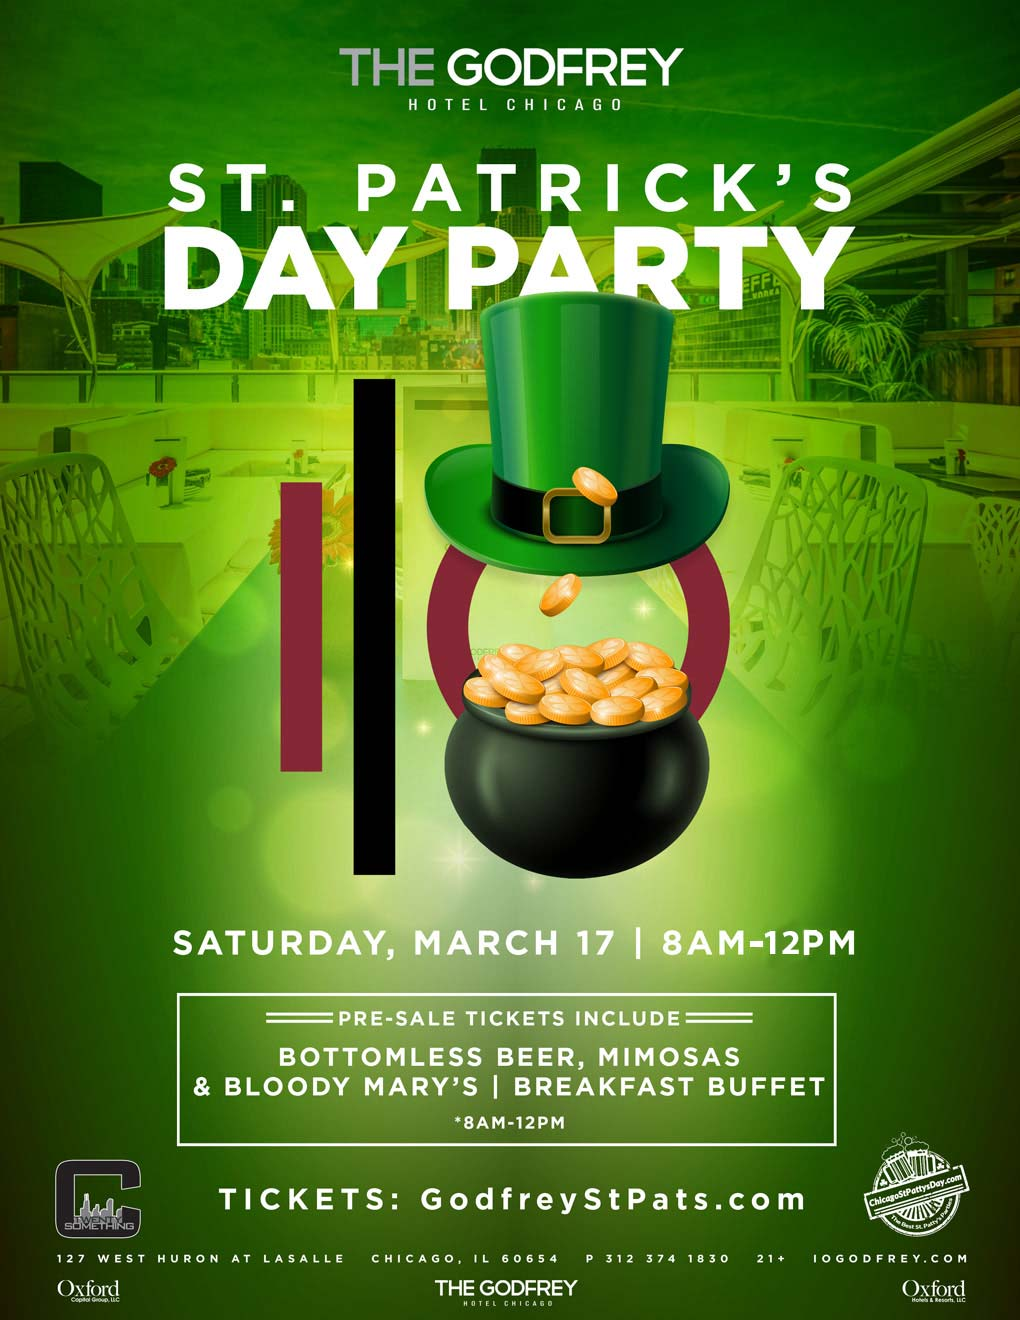 IO Godfrey Hotel St. Patrick's Day Party - Celebrate St. Patrick's Day at one of the hottest spots in Chicago!  Tickets include bottomless beer, mimosas and Bloody Mary's as well as a breakfast buffet!